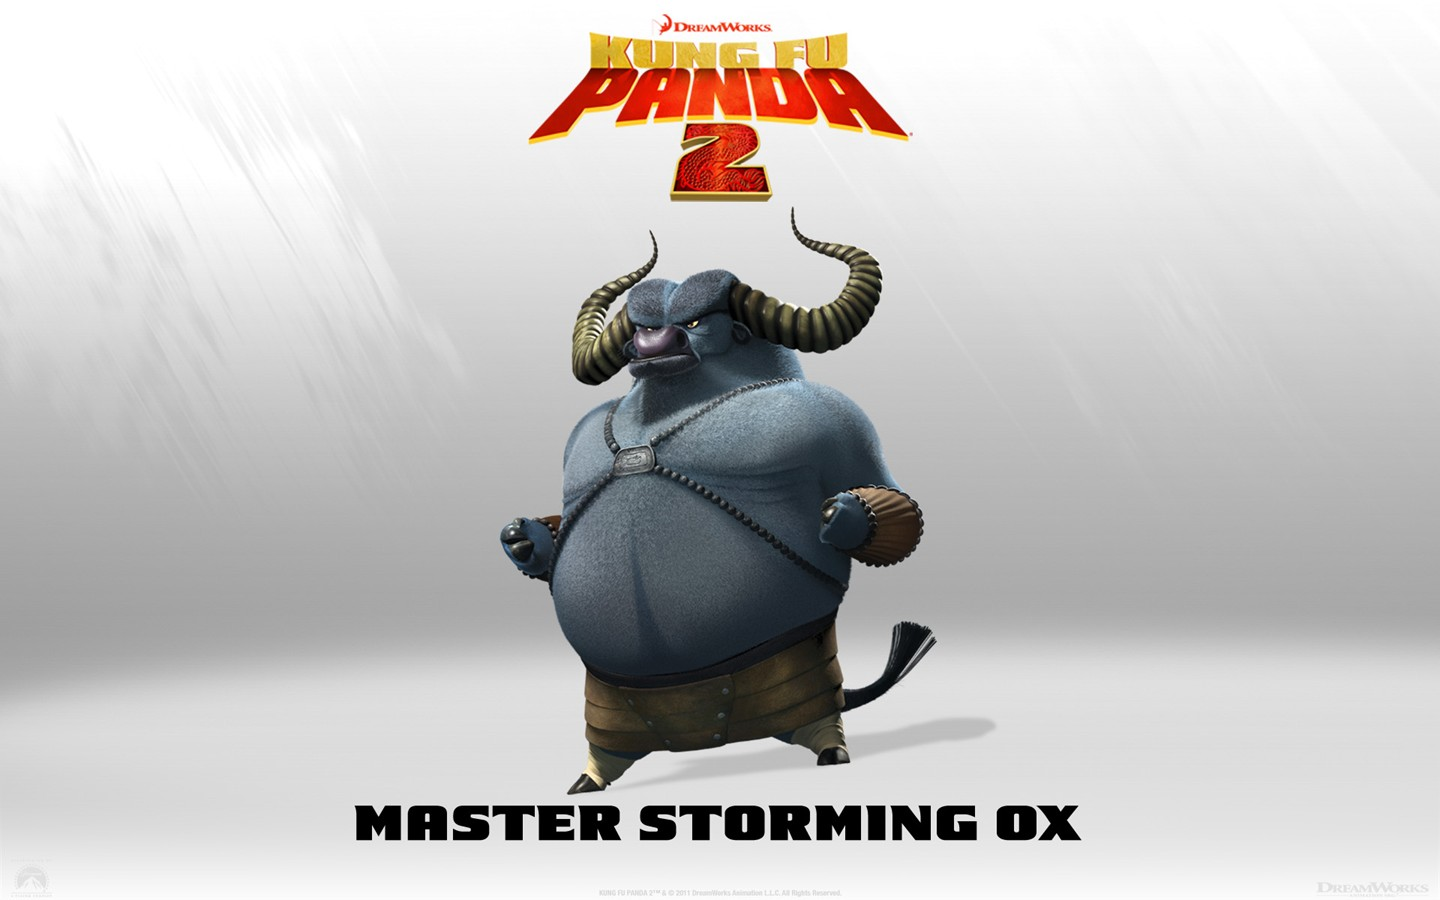 Storm Master ox ox 29565